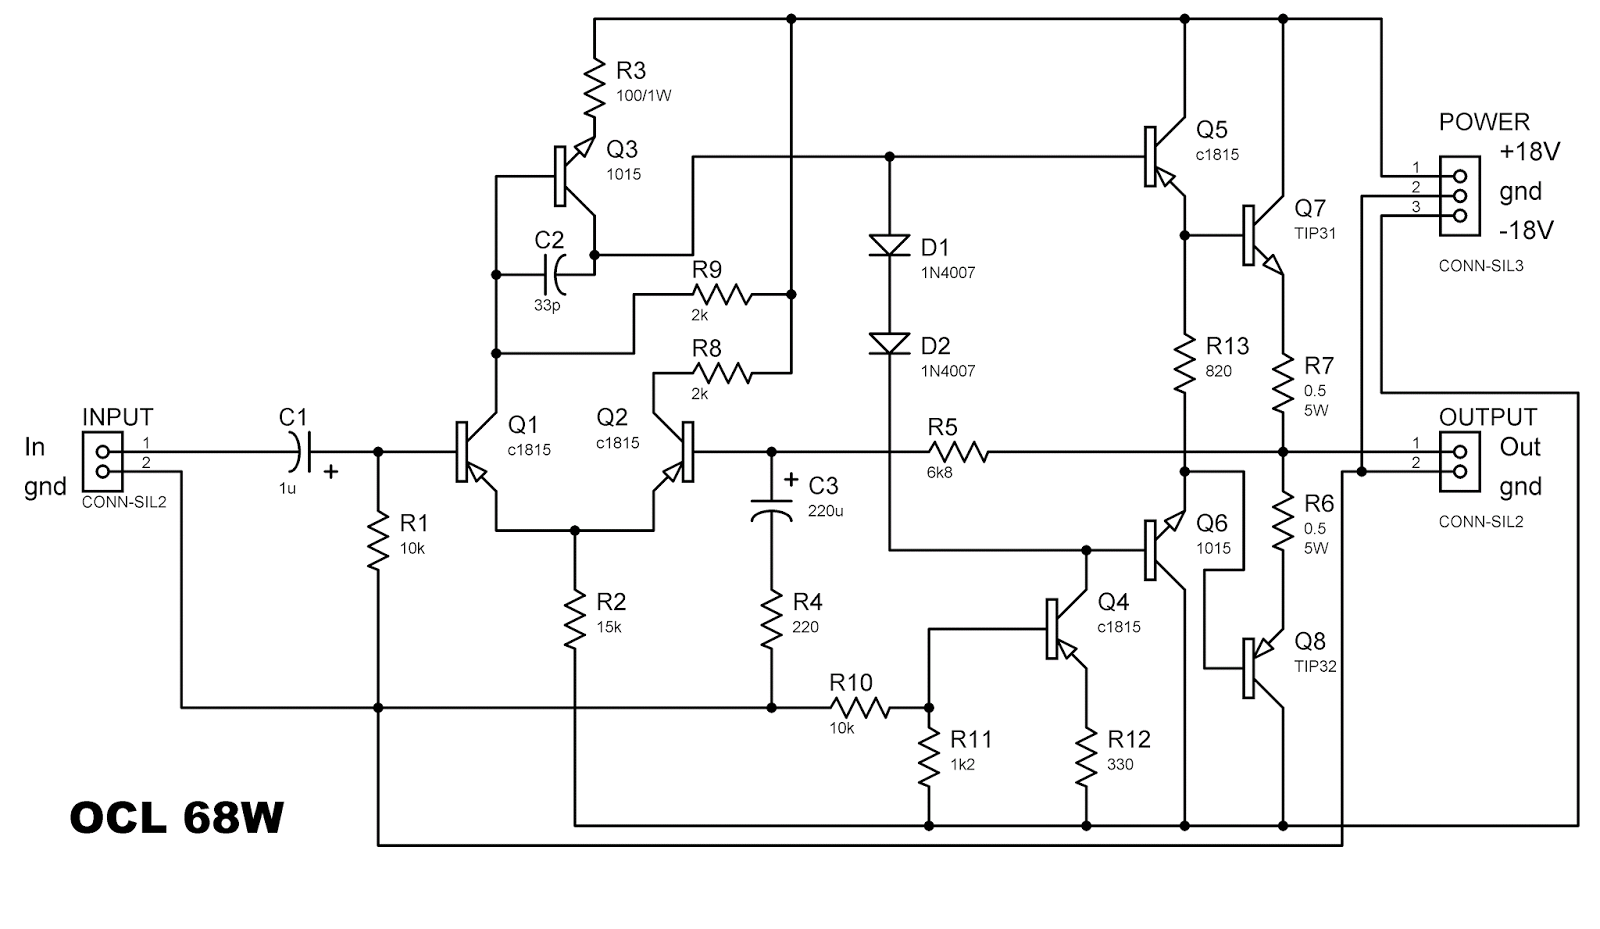 ocl 68 watt power amplifier circuit diagram